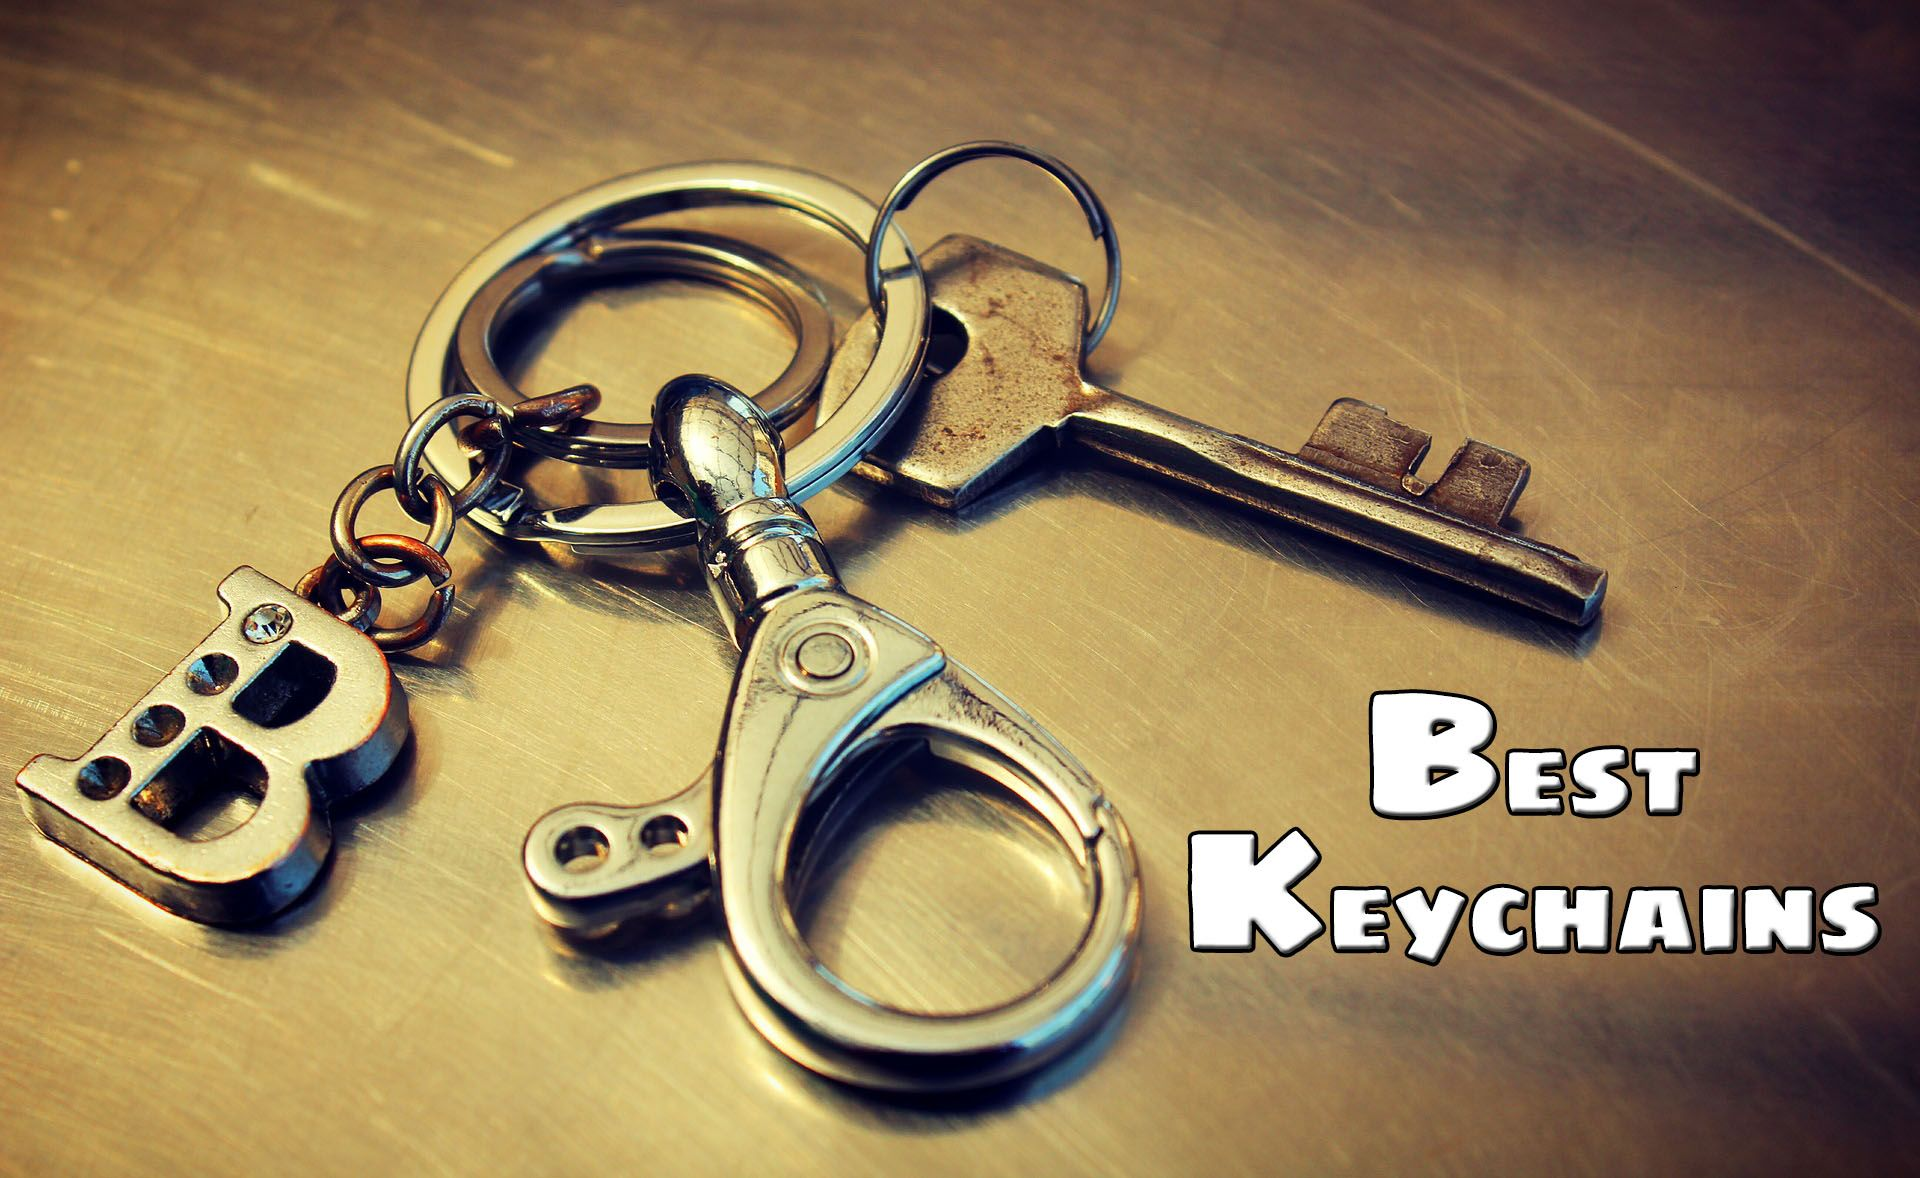 Top 10 Best Keychain For Bike To Purchase In India Keychain For